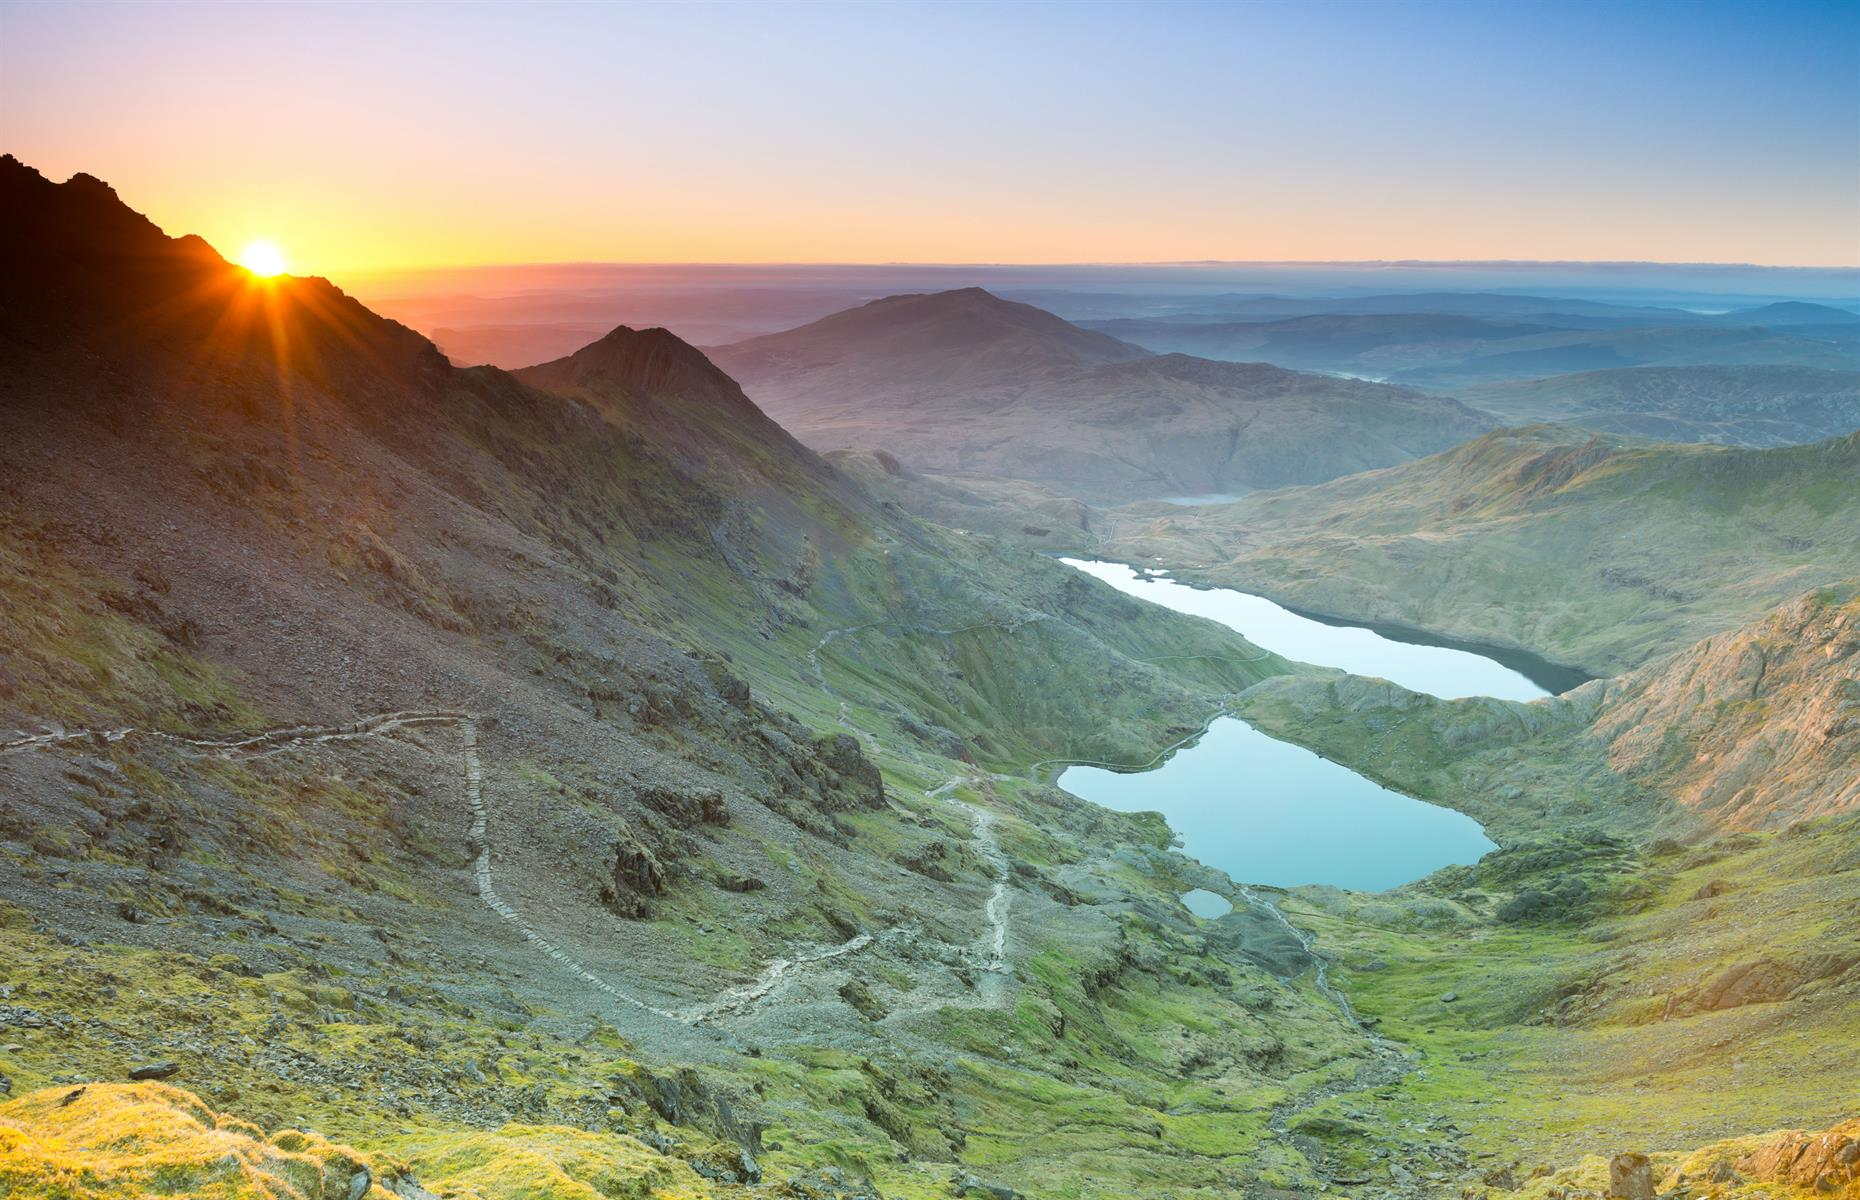 Slide 4 of 29: There are special hikes up Snowdon for those who want to catch the sunrise from the 3,560-foot (1,085m)peak of the tallest mountain in Wales. The five- to seven-hour trek isn't to be underestimated, but walking beneath a twinkling sky of stars, before being rewarded with the break of dawn over north Wales is certainly worth it. It's just one of the many reasons why we love Wales.